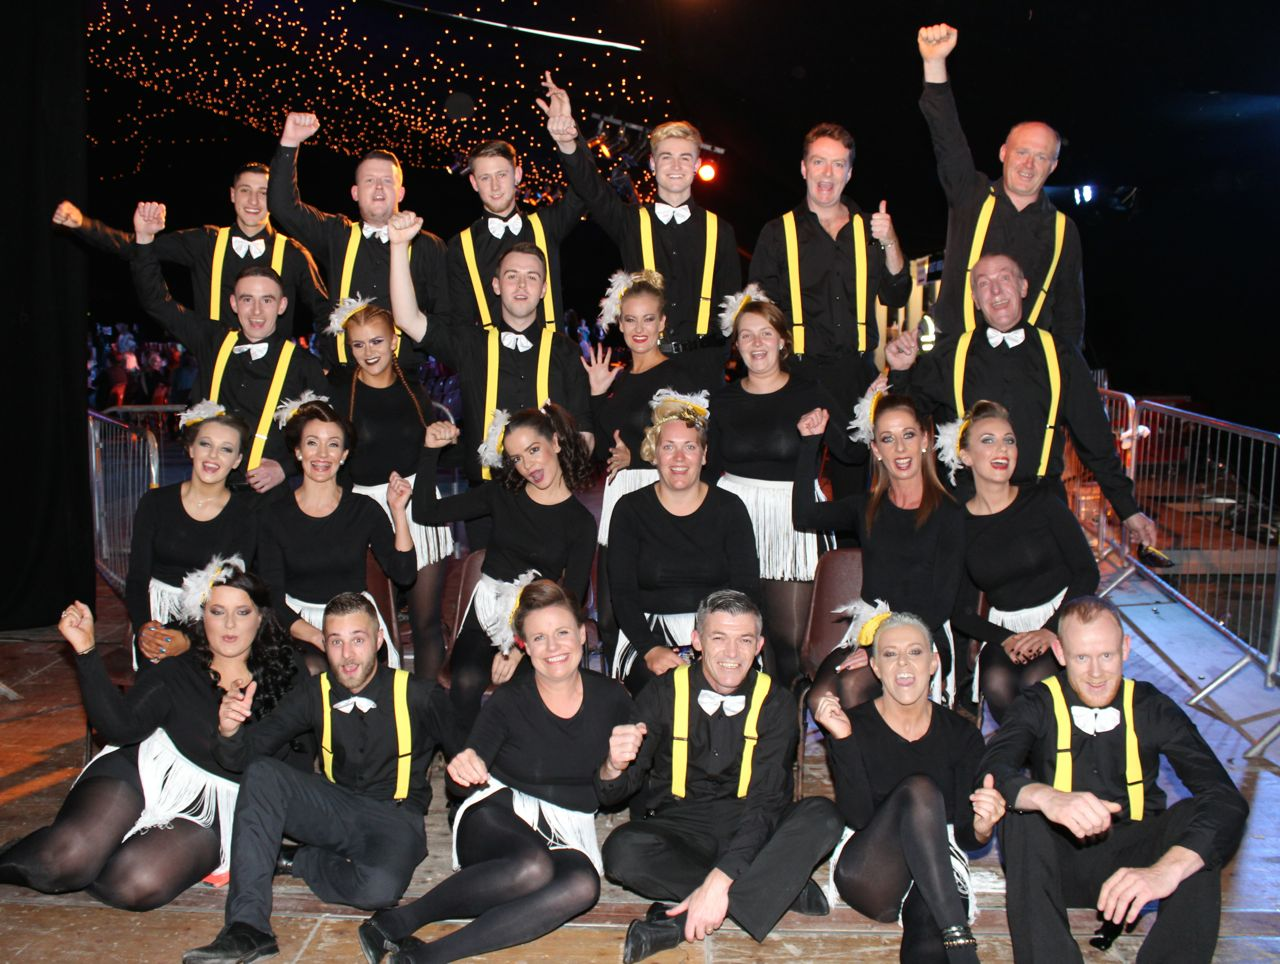 The contestants at the Austin Stacks Strictly Come Dancing night in The Dome on Saturday. Photo by Dermot Crean